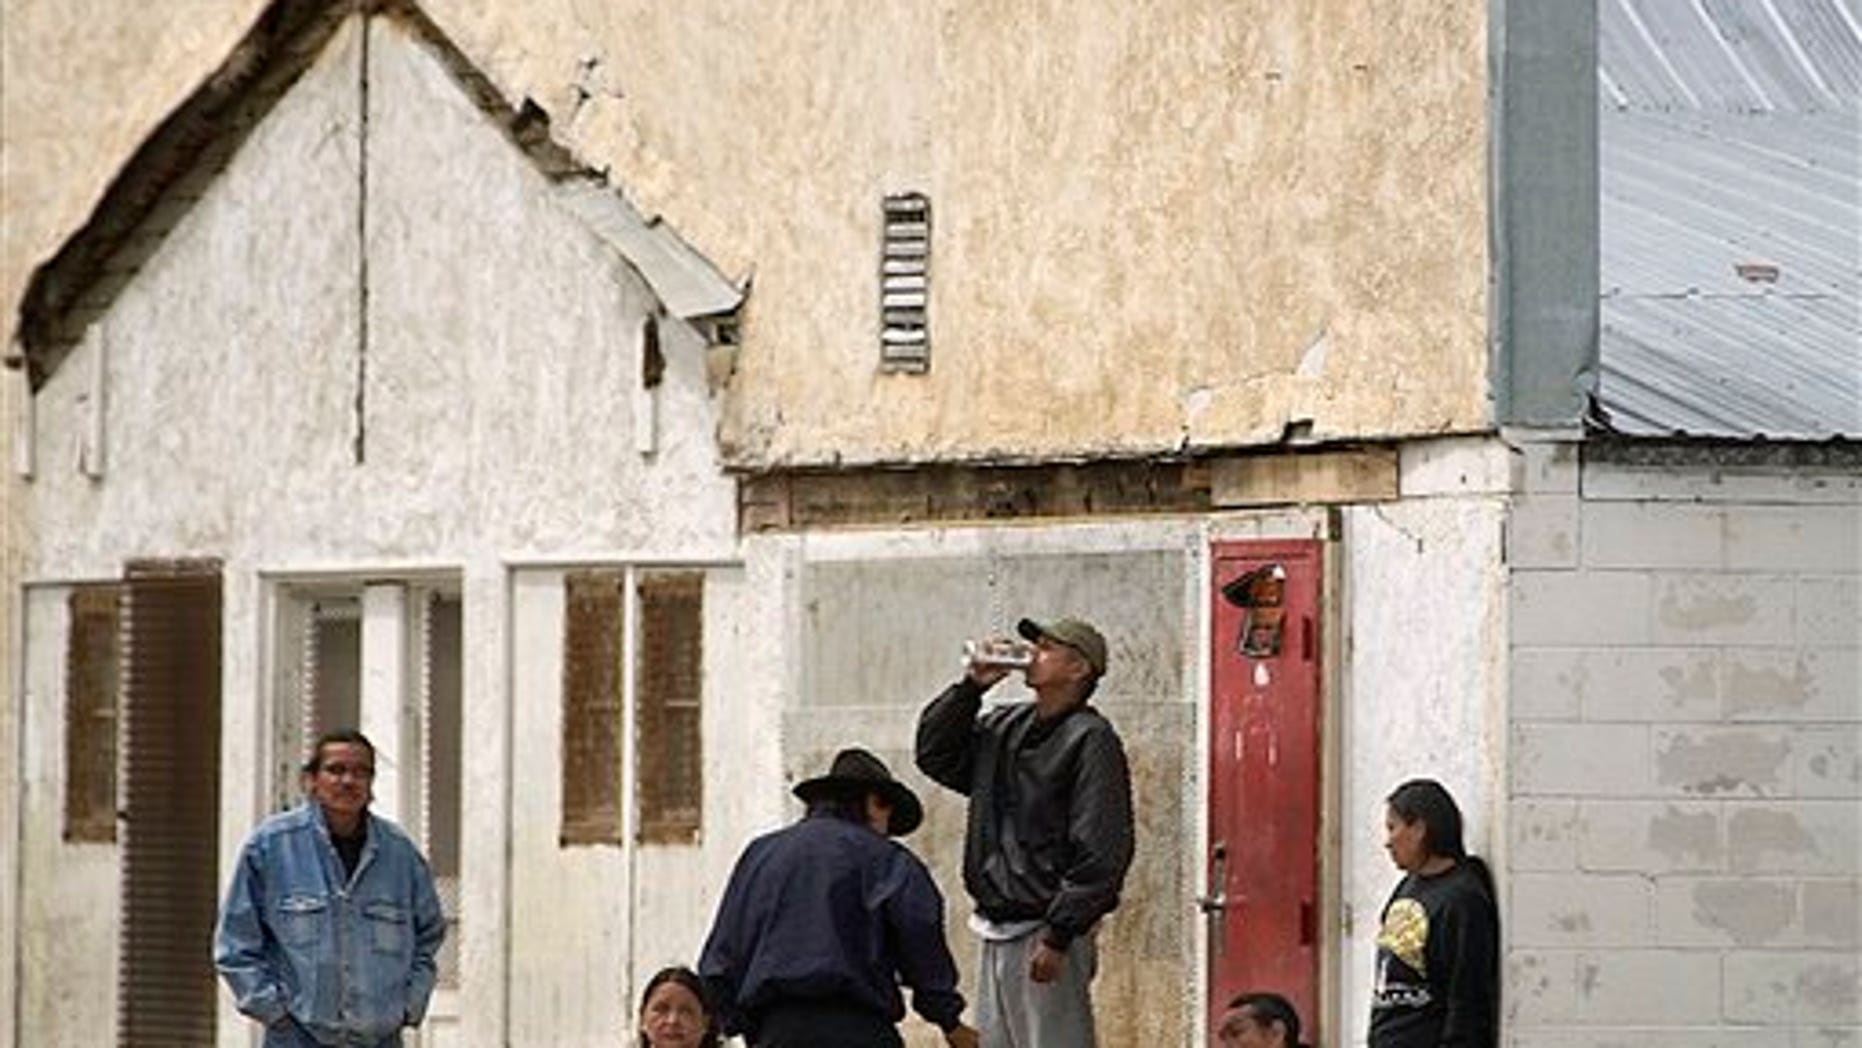 June 7, 2003: A man drinking a beer standing with other Native Americans on the streets of Whiteclay, Nebraska.